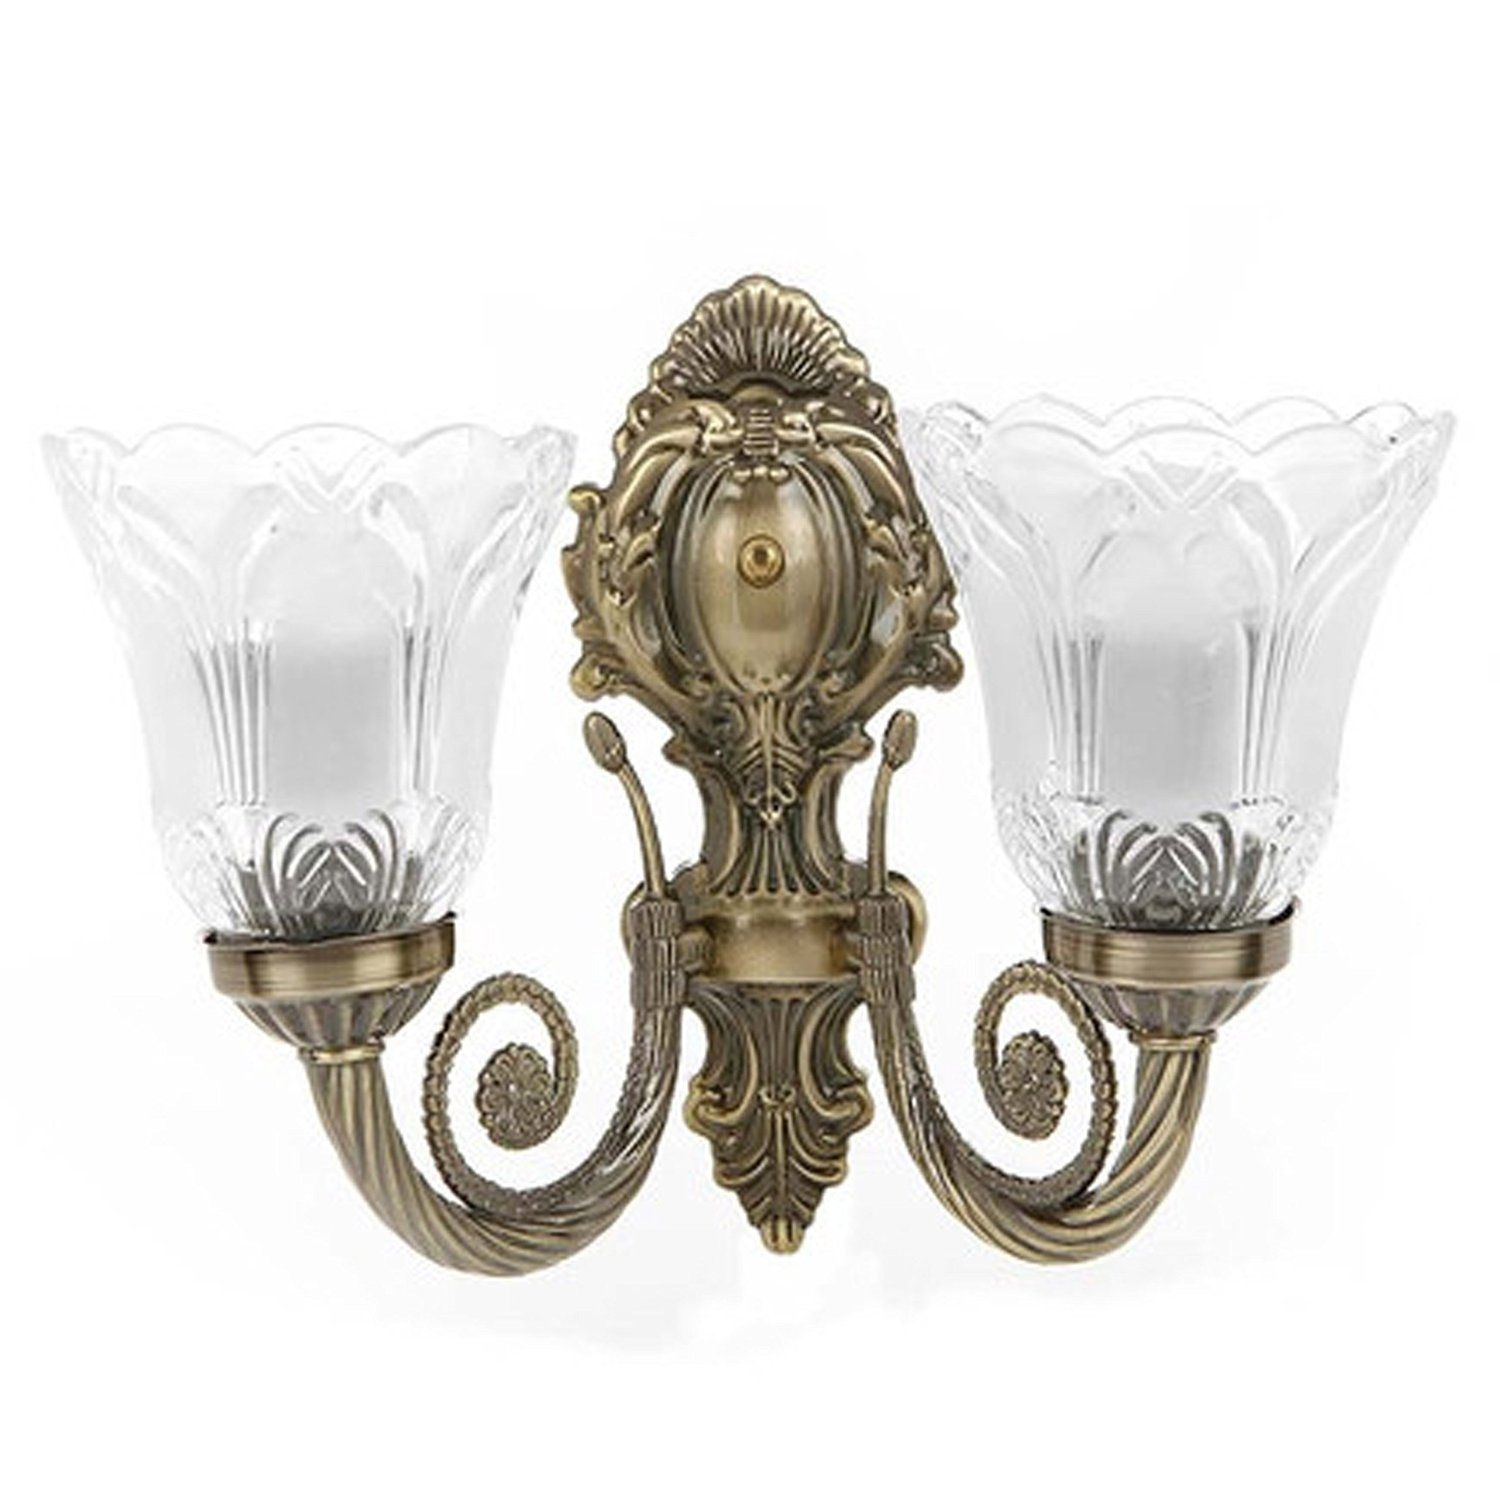 Rck products imported antique double wall lightwall hanging double lamp in antique design